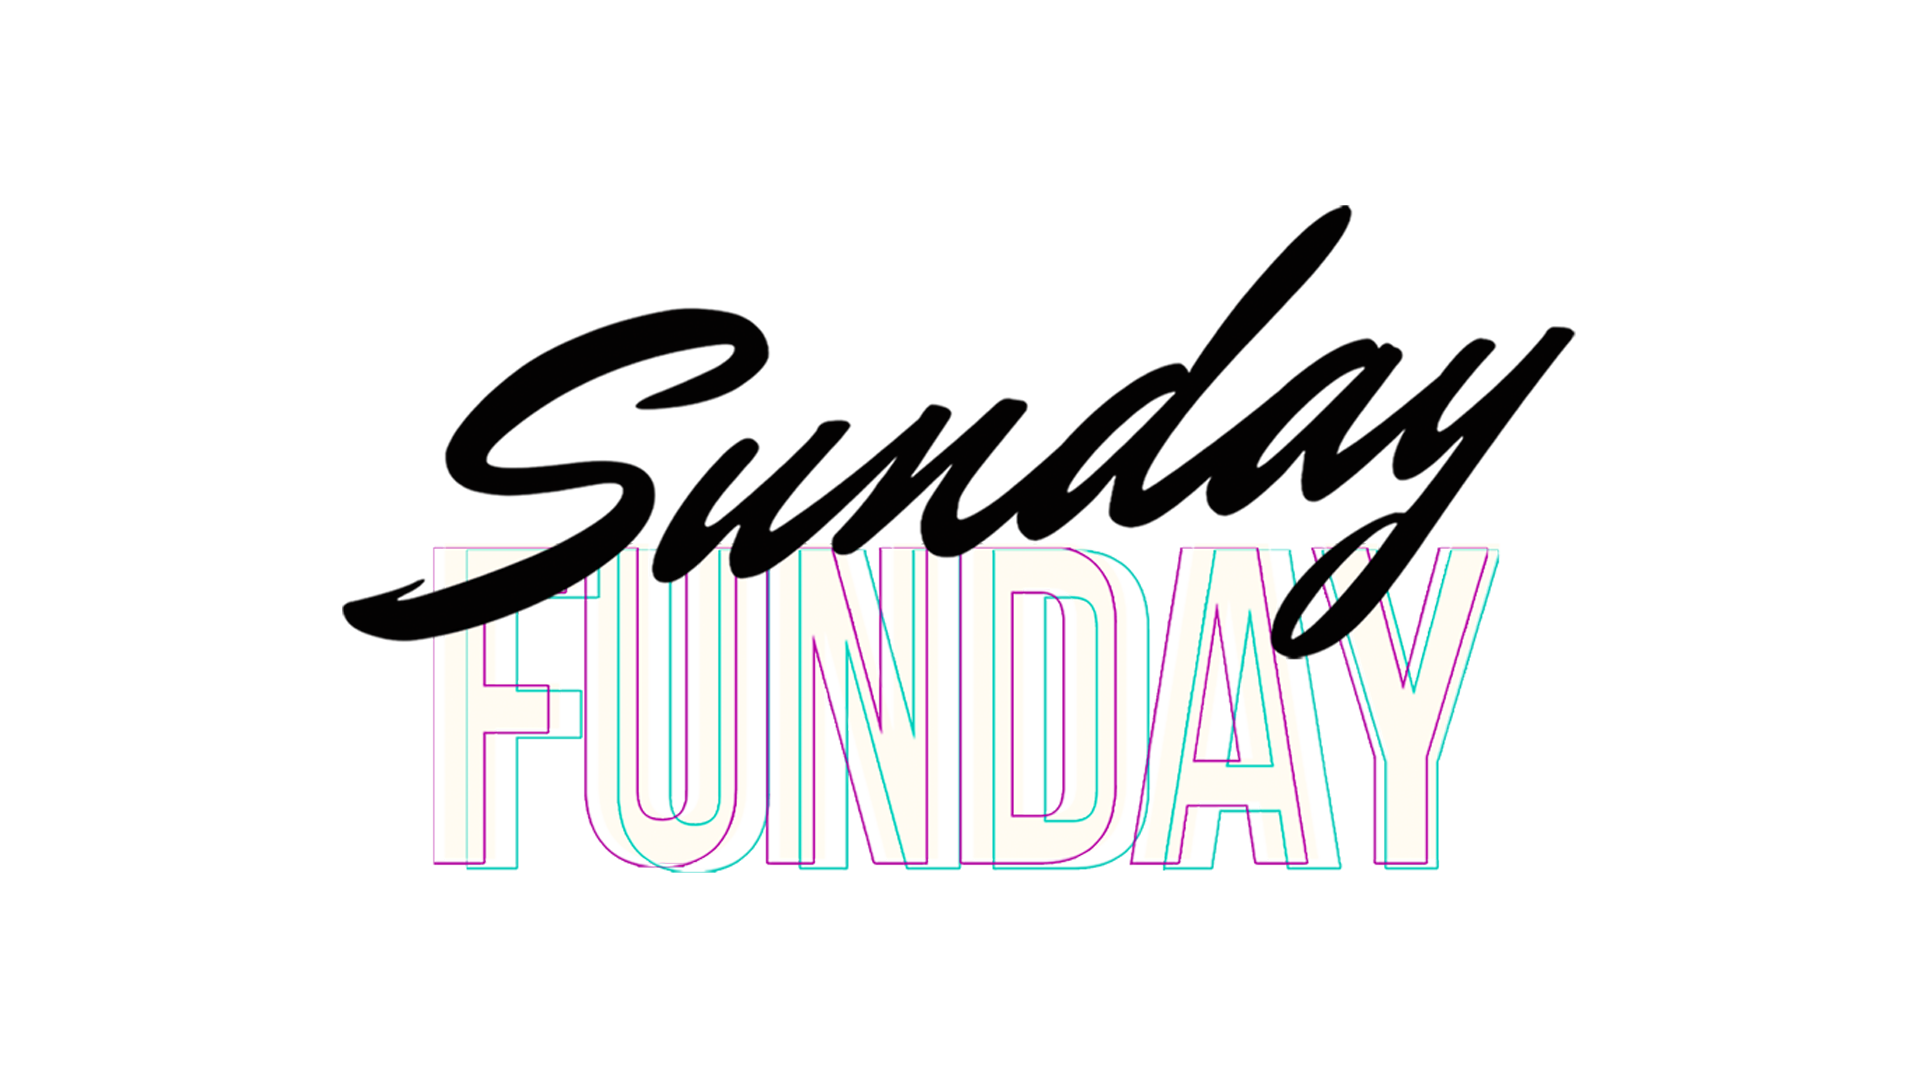 Sunday Funday Blank text.png